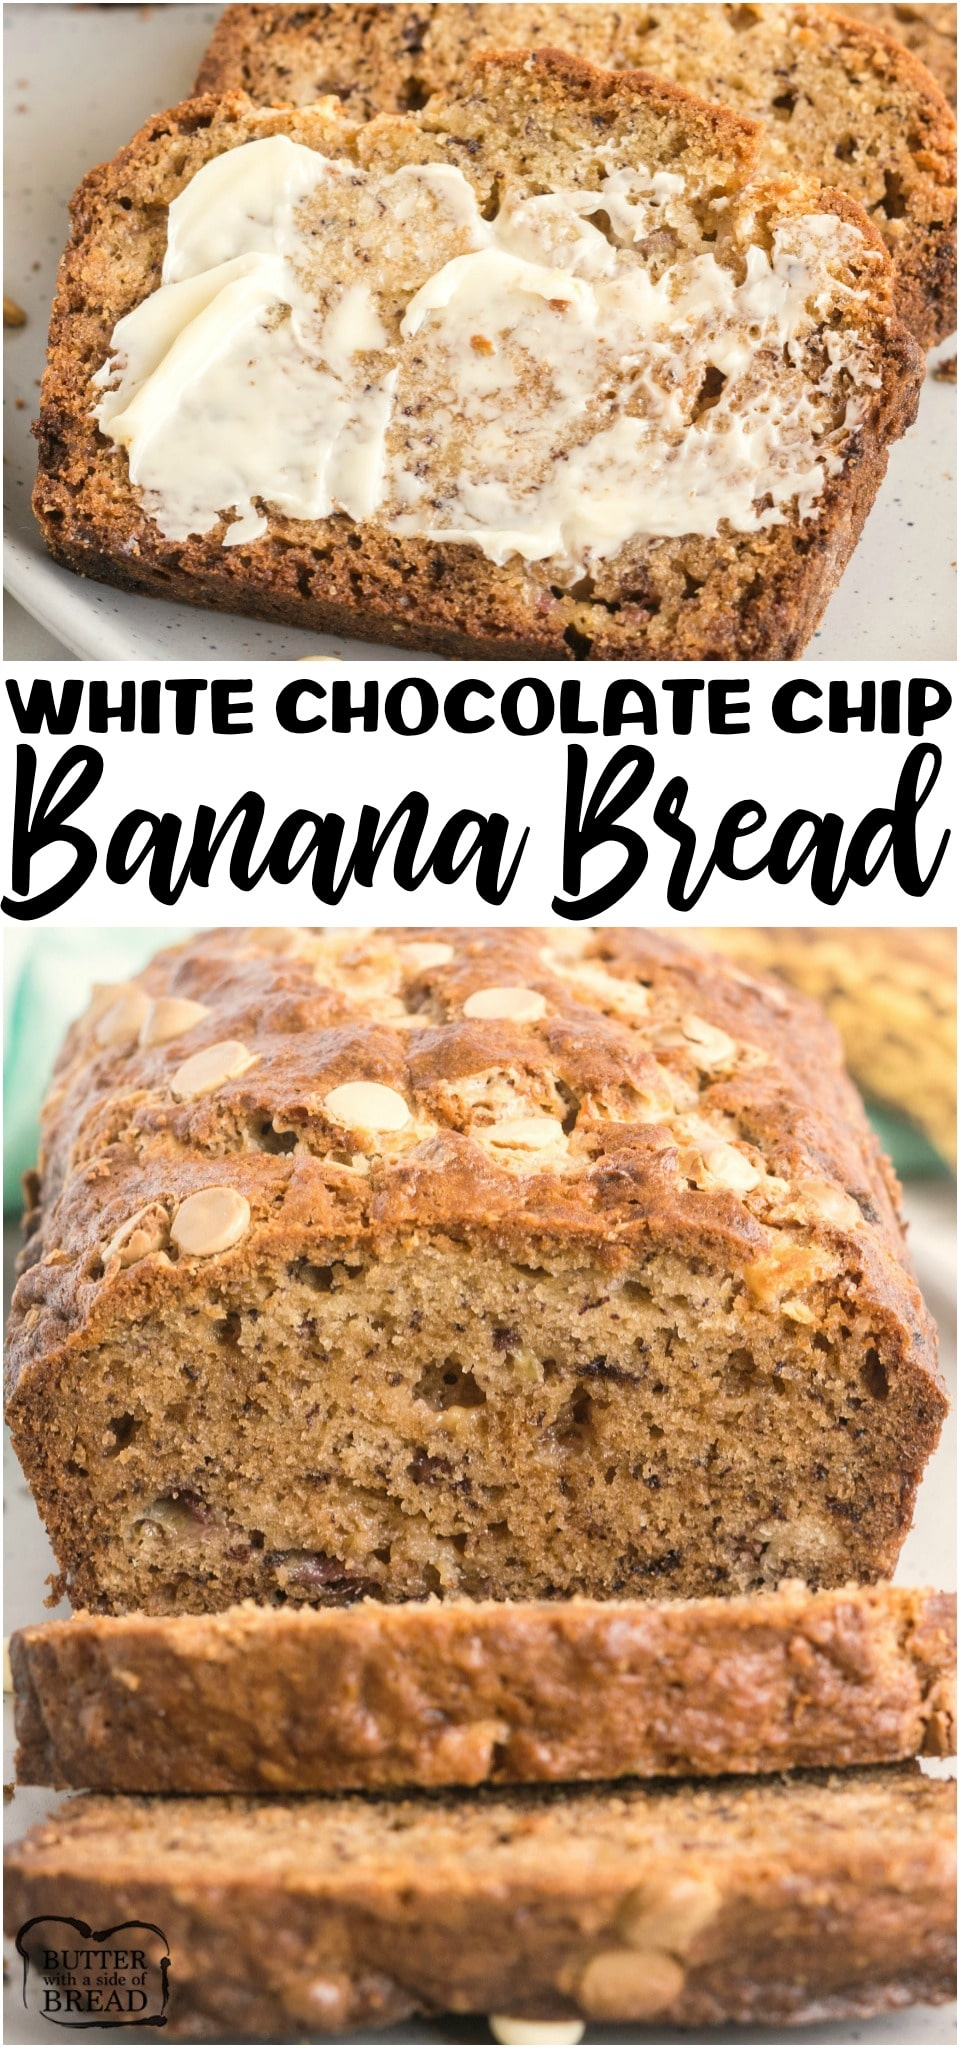 White Chocolate Chip Banana Bread is an incredible variation on classic banana bread! Sweet white chocolate and banana blending together to create an amazing banana bread recipe you need to try! #bread #banana #bananabread #baking #homemade #breadrecipe from BUTTER WITH A SIDE OF BREAD